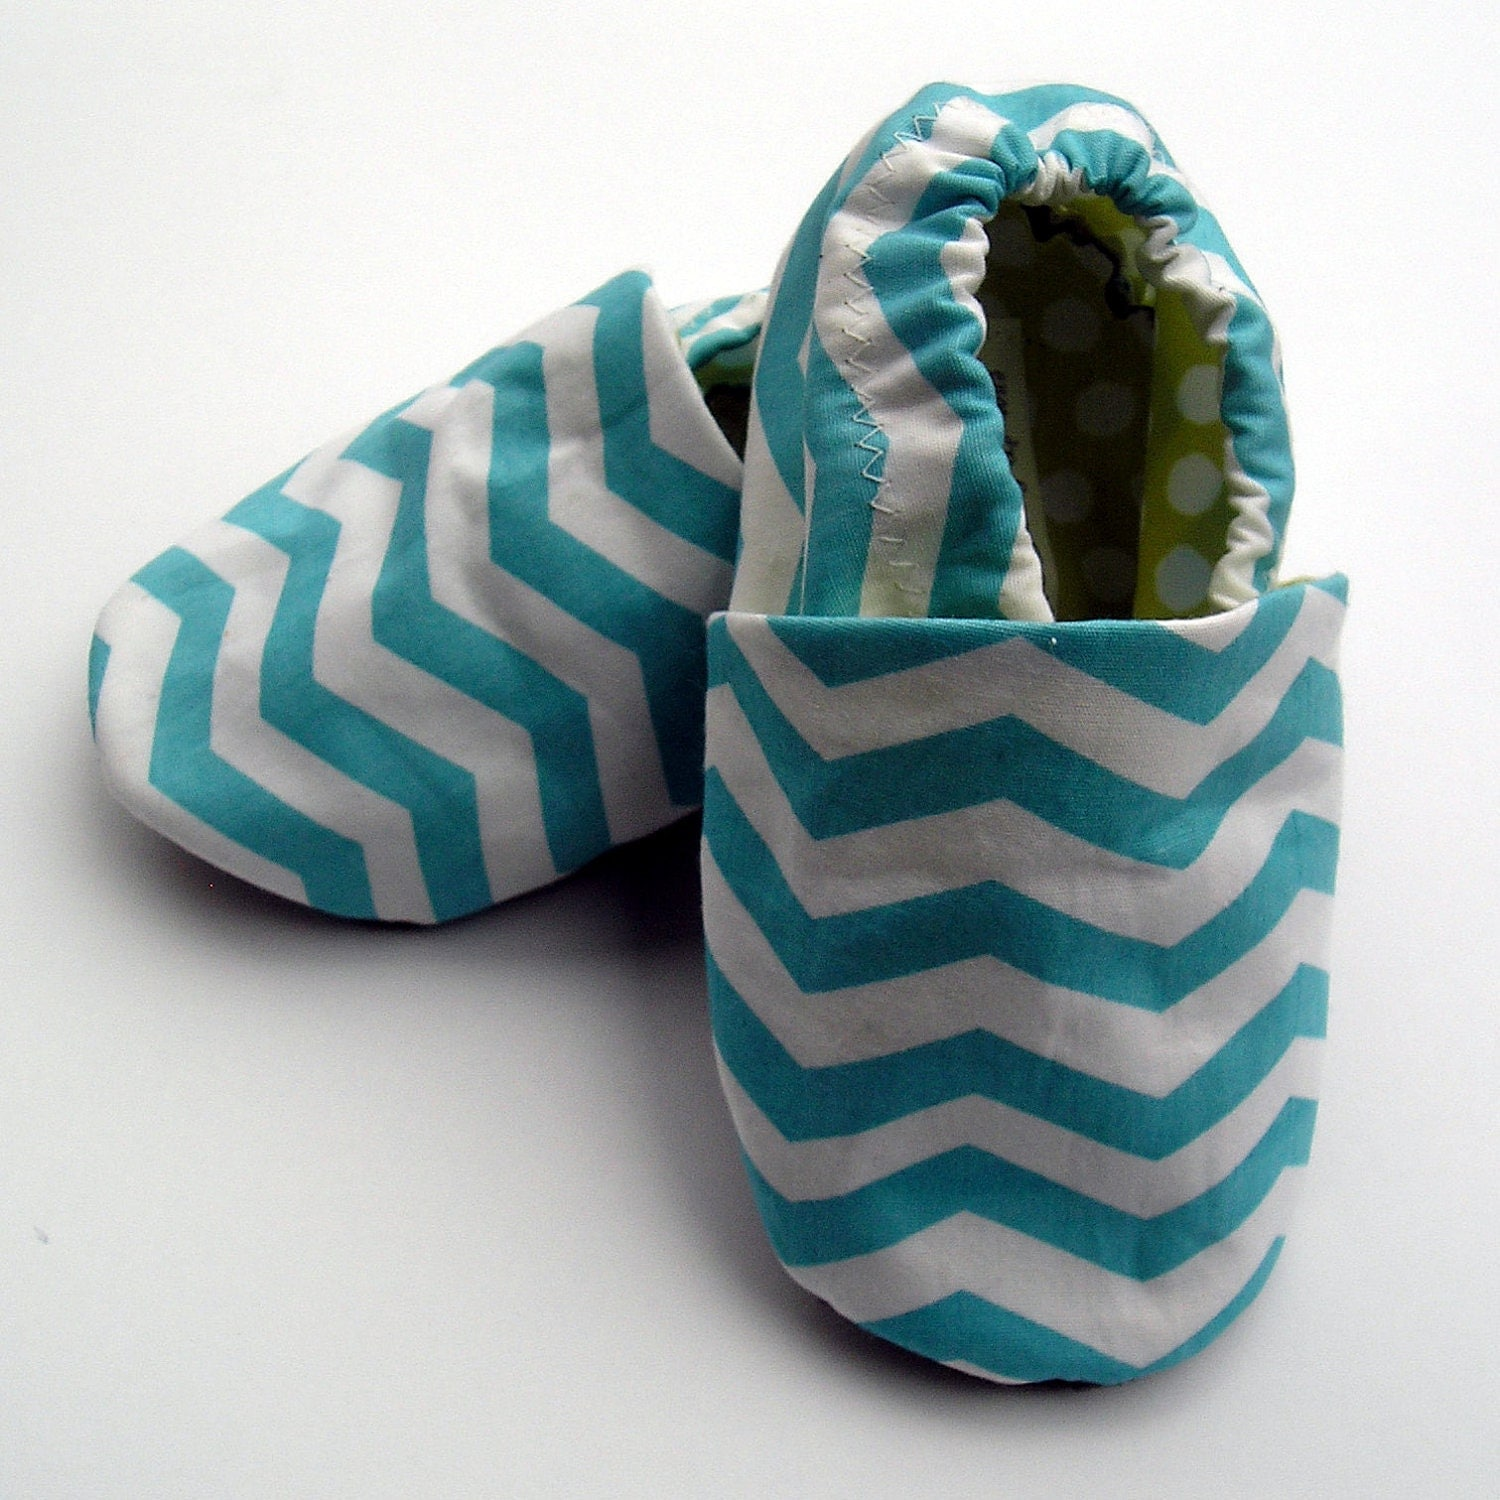 Ready to Ship 6  -12 months Organic Baby Blue Chevron Stripes Shoes in Turquoise and White with Lime Green Dotty Linings Handmade Baby Shoes